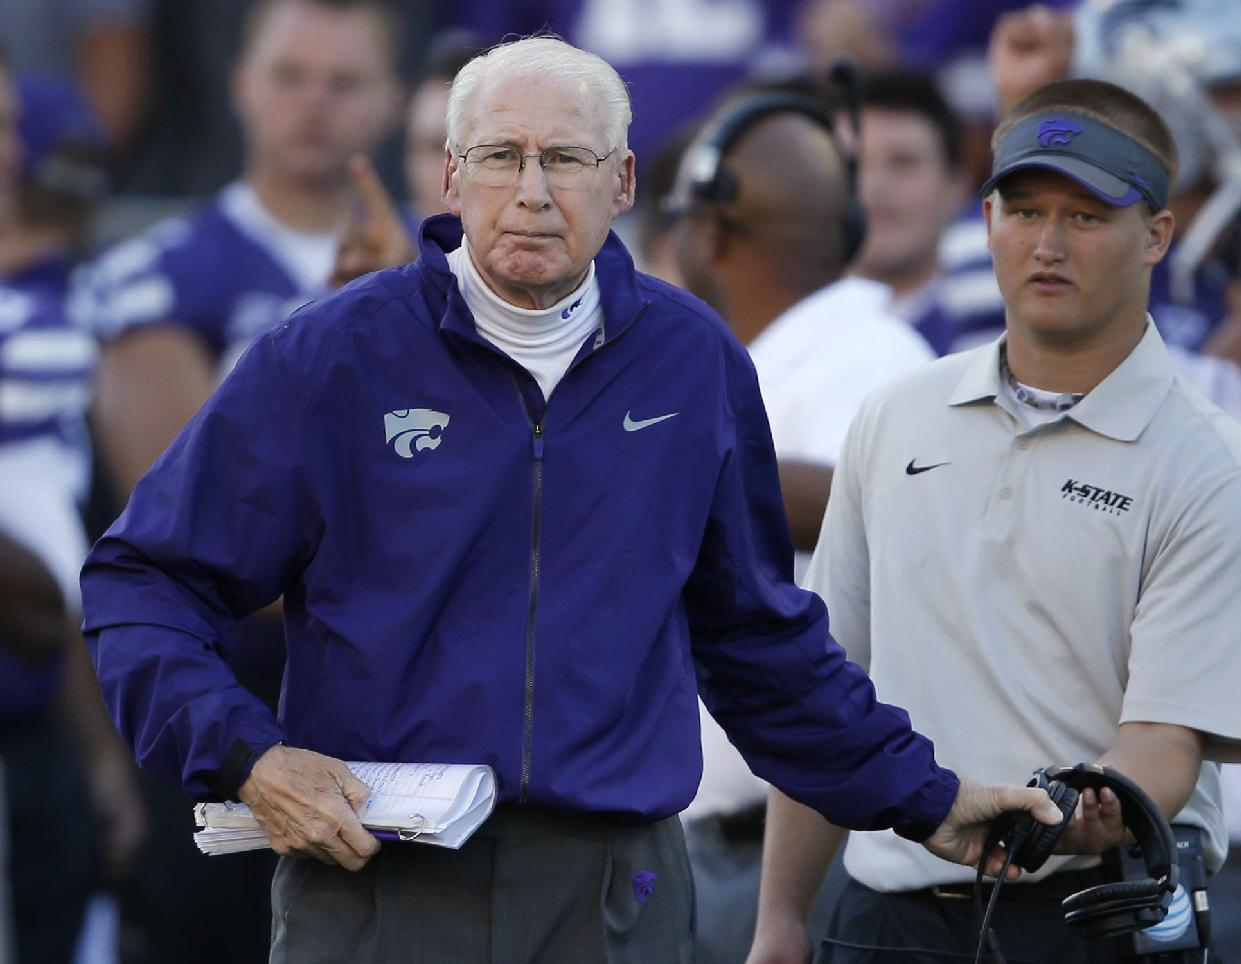 In this Oct. 12, 2013, file photo, Kansas State coach Bill Snyder takes off his headset to check on an injured player during the second half of an NCAA college football game against Baylor in Manhattan, Kan. The top three returning running backs for No. 20 Kansas State this season have combined to carry the ball 11 times for 55 yards. None of them has ever scored a touchdown